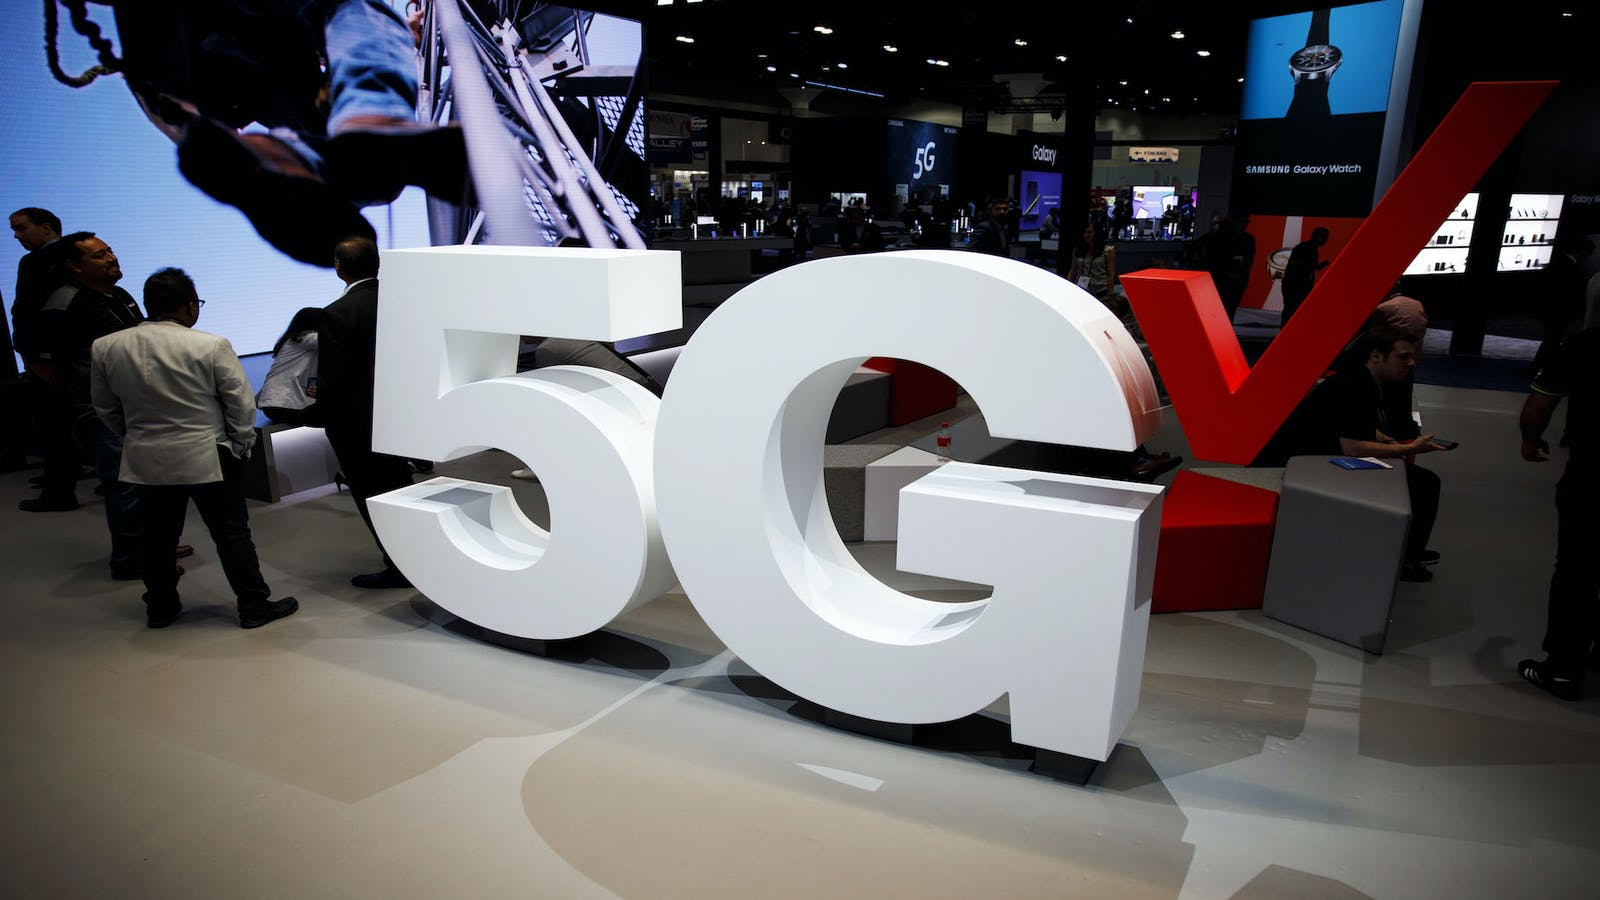 A 5G sign at a Verizon company booth during a 2018 telecoms industry conference in Los Angeles. Photo by Bloomberg.